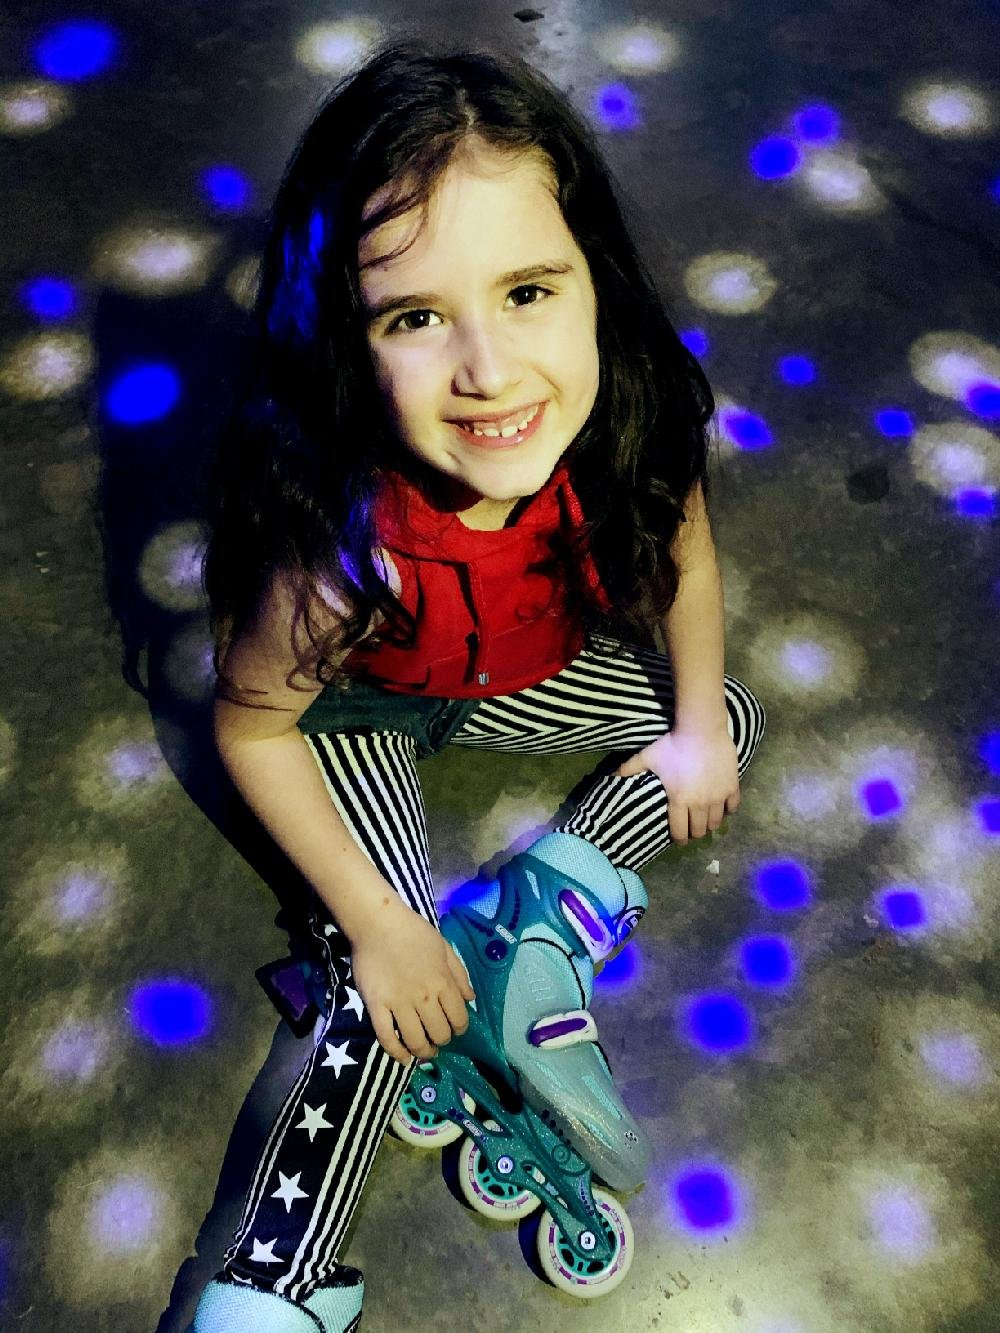 Phoenix Murphy, 7, sits on the garage floor of her Little Rock home getting ready to skate in the improvised roller rink created by her parents, Mac and Ashley Murphy. (Special to the Democrat-Gazette/Ashley Murphy)